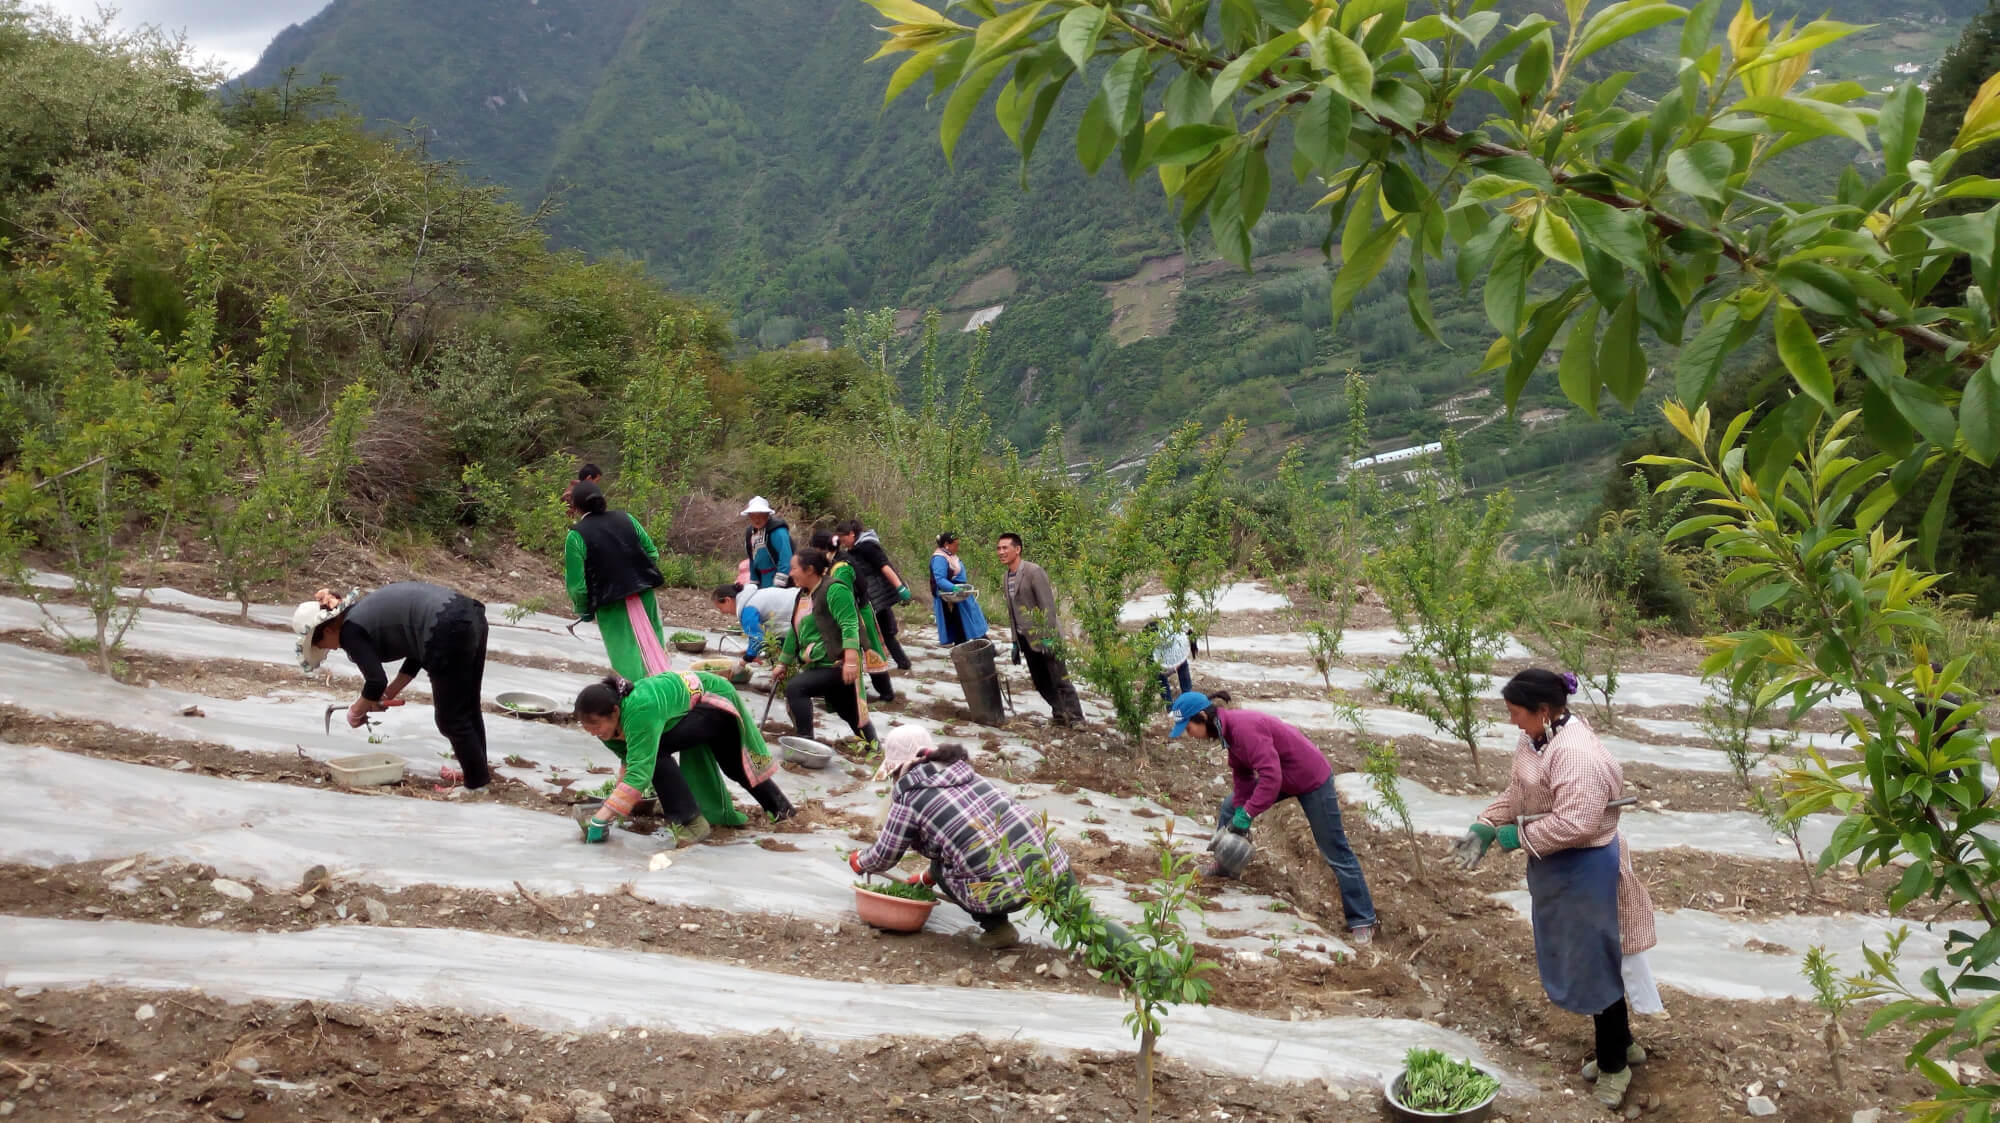 Workers in the fields of rural China